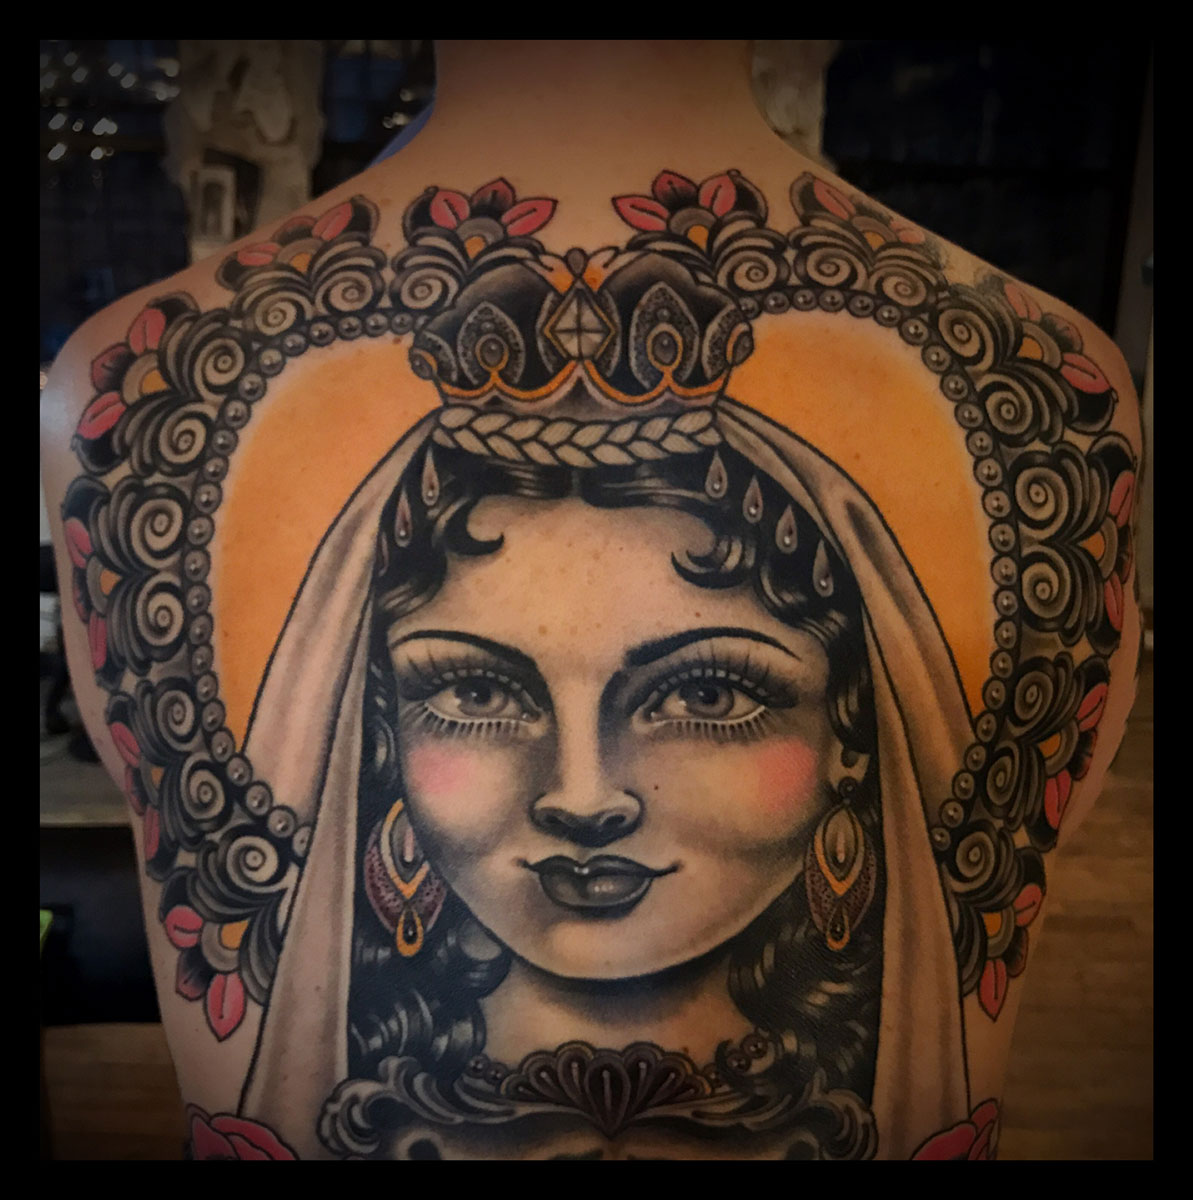 rose hardy tattoo artist at kings avenue tattoo new york